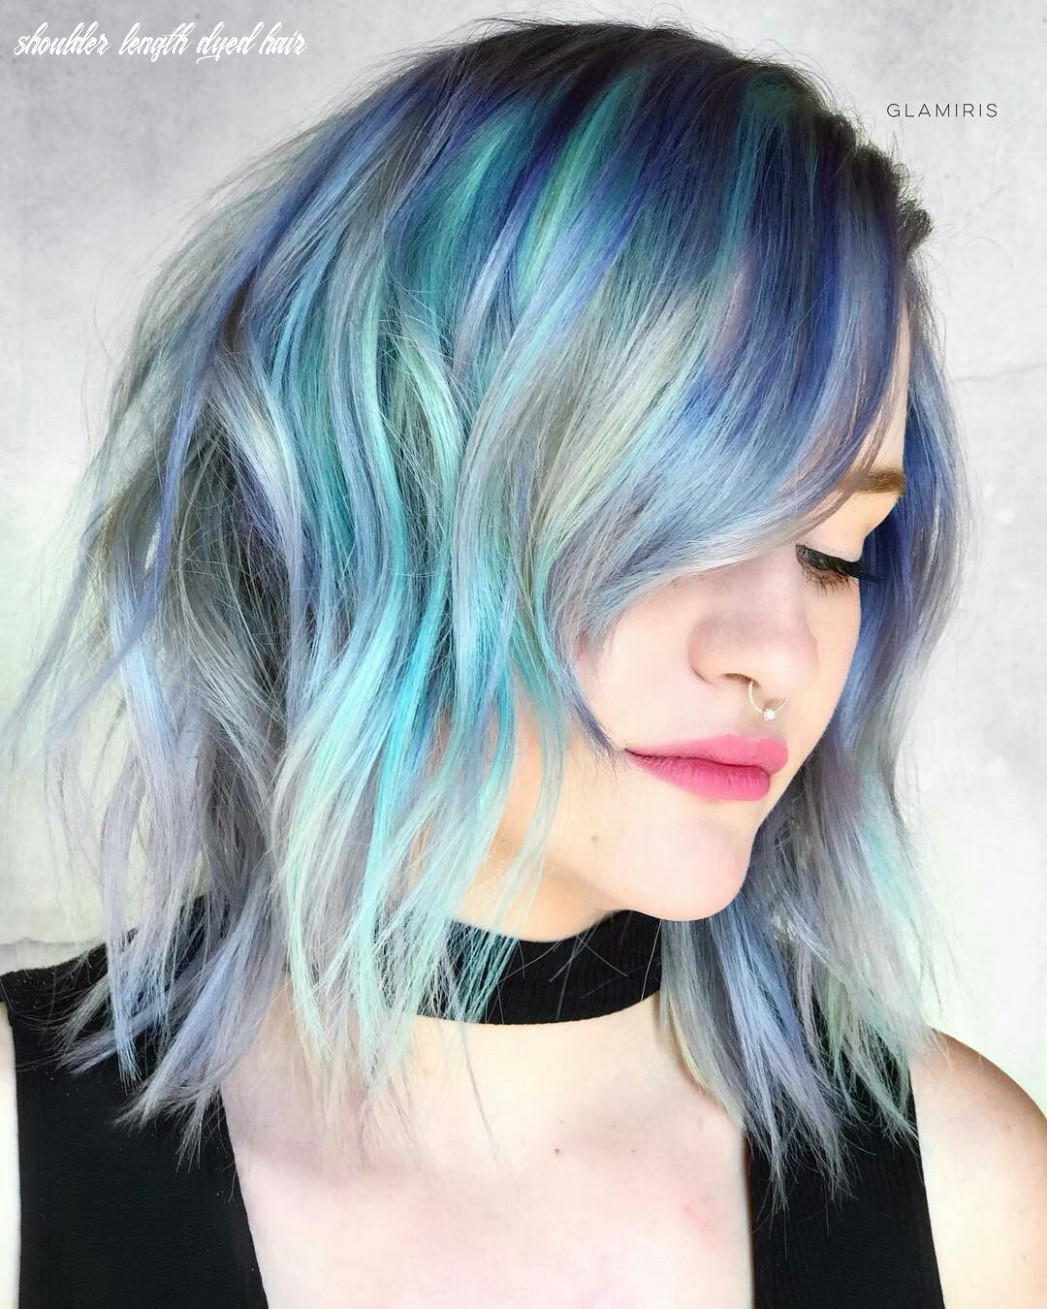 Pin by nonie chang on dyed hair   hairstyles with bangs, shoulder